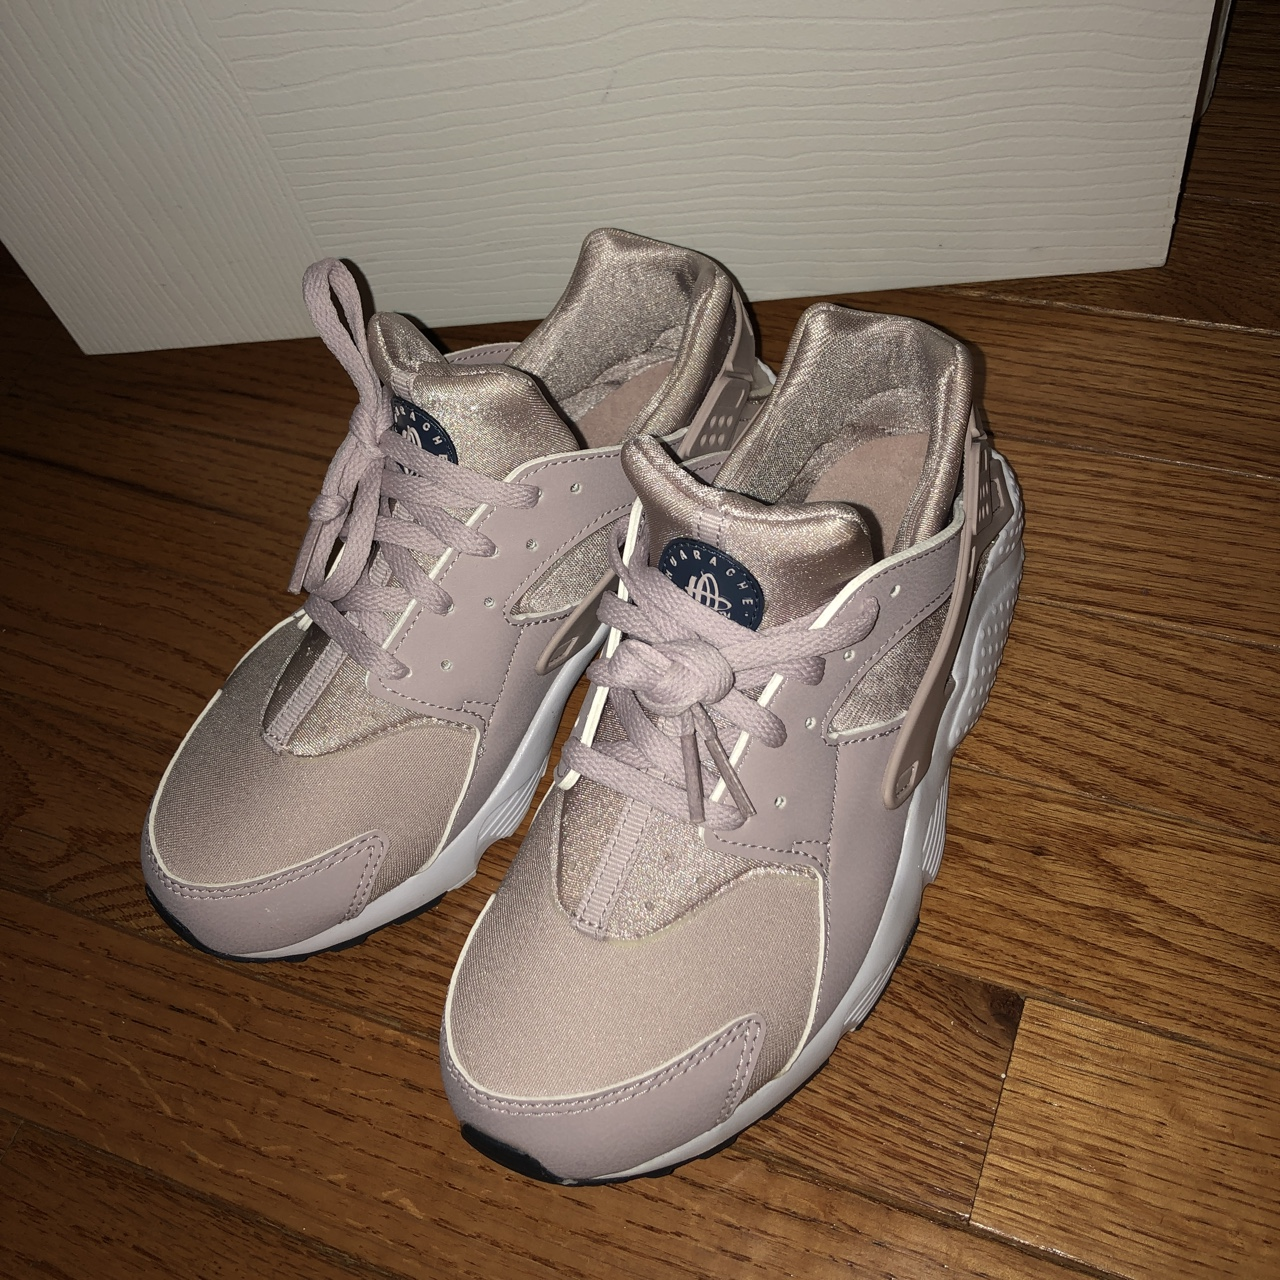 Nike huaraches Color - Pale pink Size